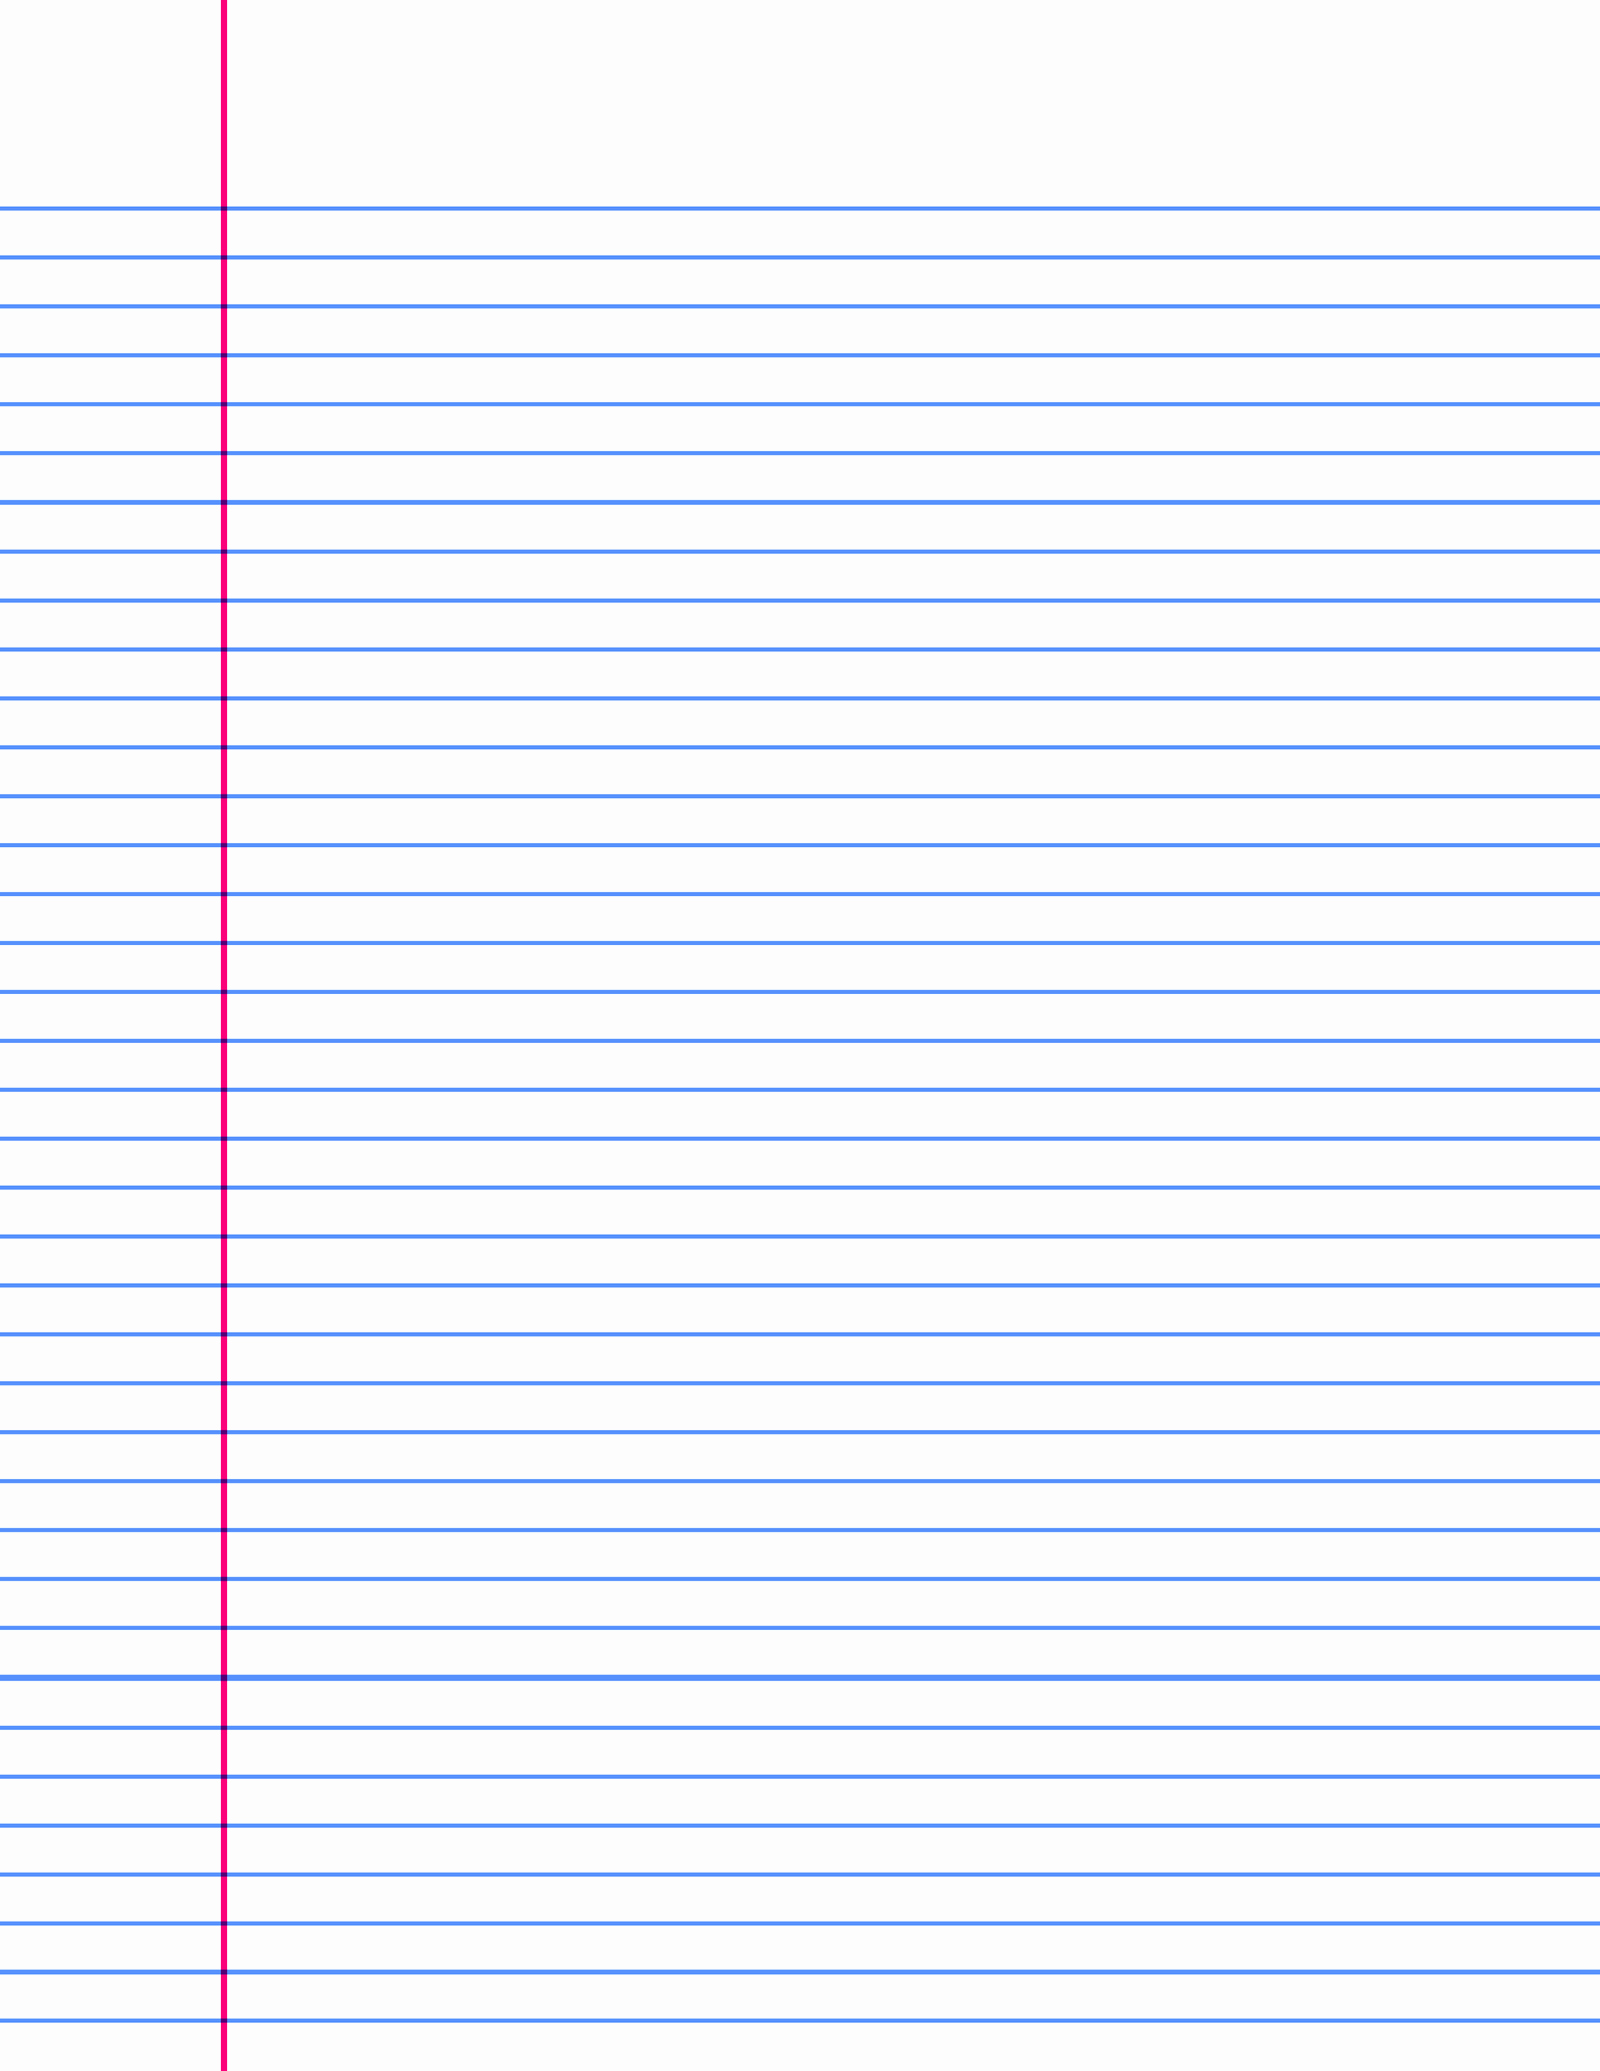 Lined Writing Paper Best Of A4 Lined Paper Image Lined Paper with Blue Lines College